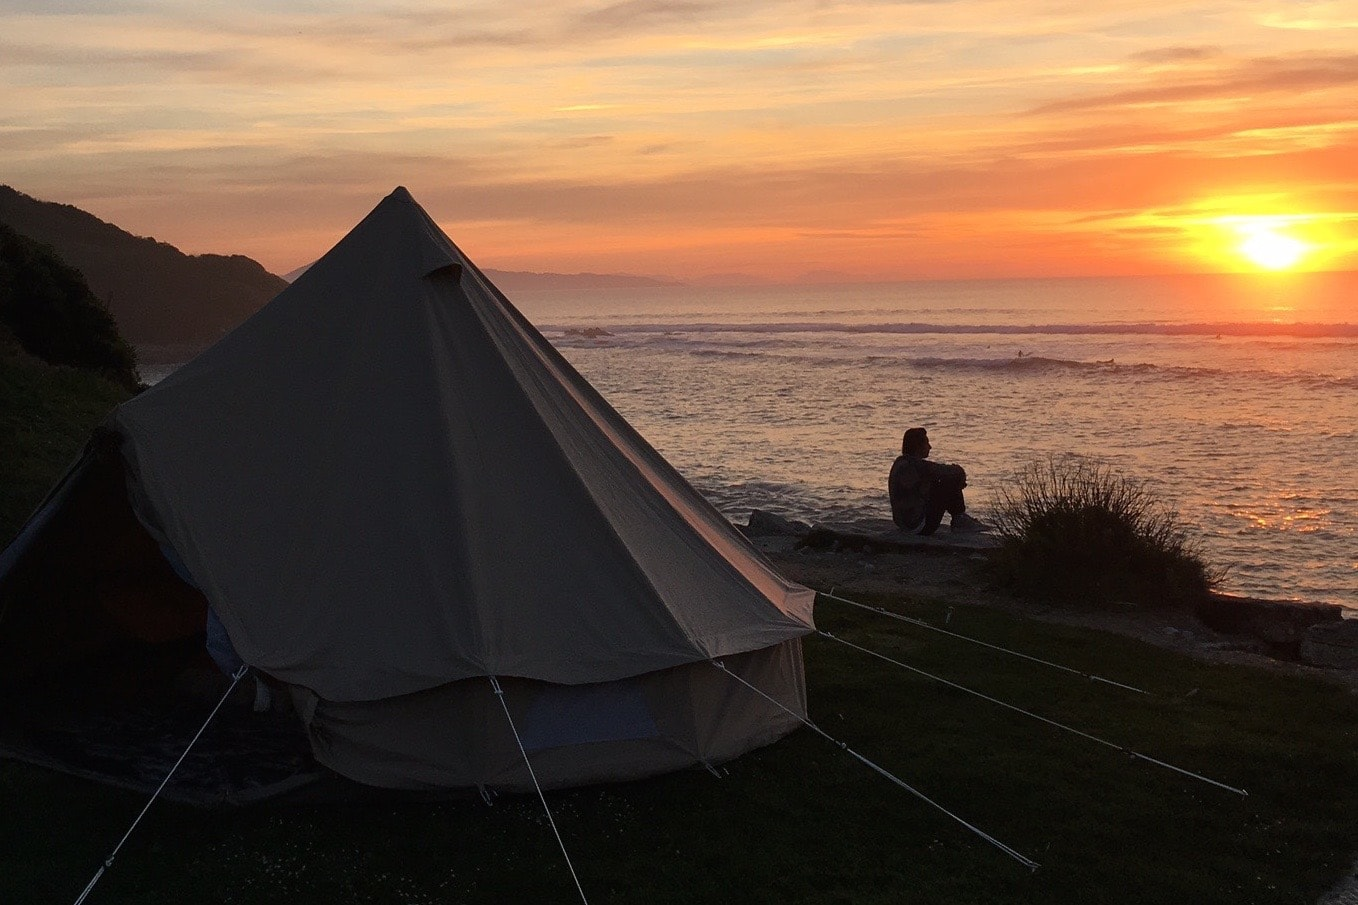 SNAZZY-CAMP-BIARRITZ-ACCOMMODATION-BASQUE-COUNTRY-CAMPING-GLAMPING-FRANCE-HOLIDAYS (8).jpg